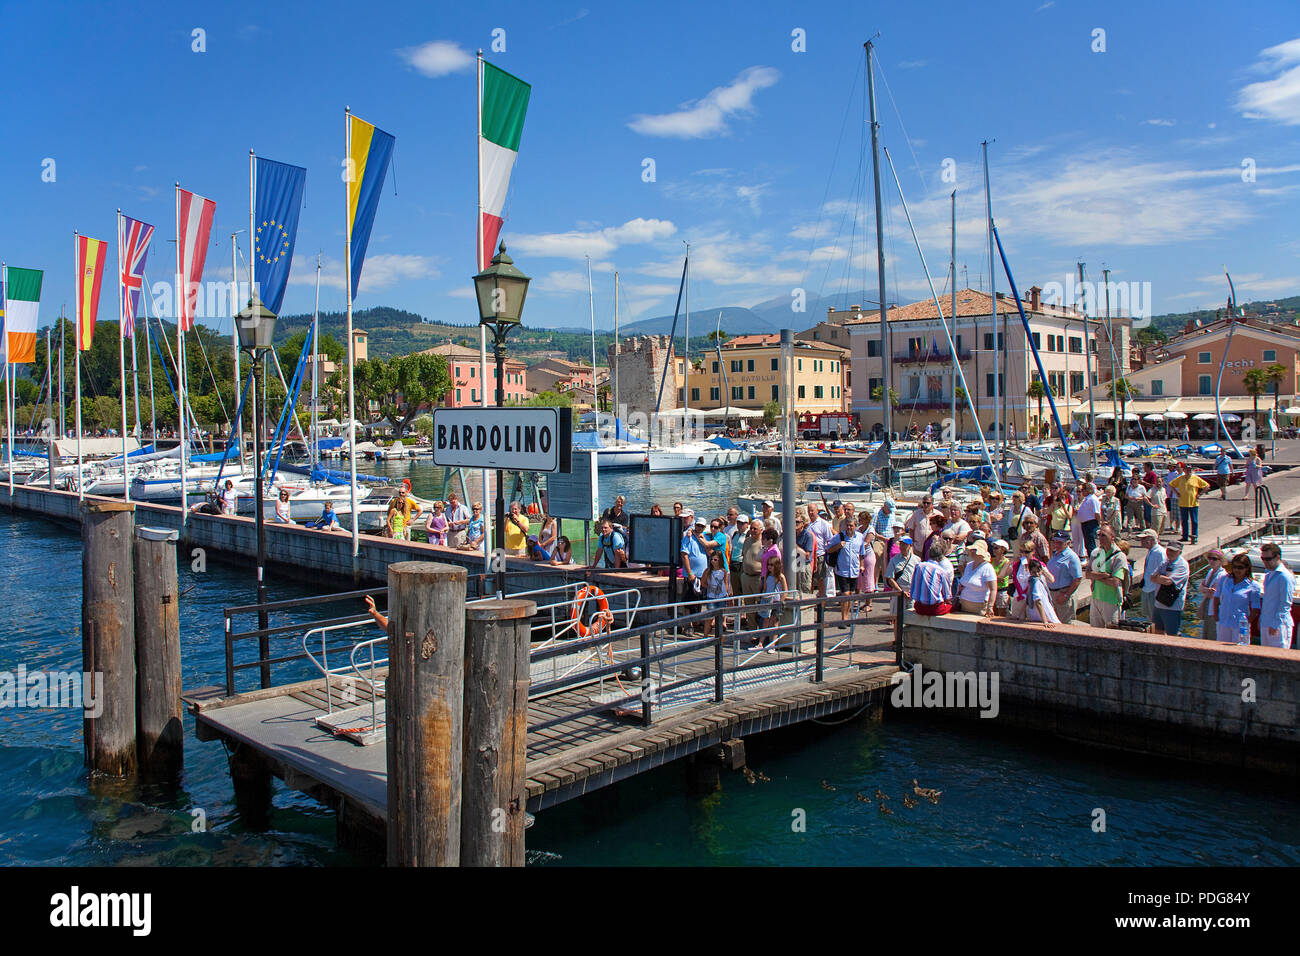 Tourists waiting for excursion boat at the pier of Bardolino, province Verona, Lake Garda, Lombardy, Italy - Stock Image